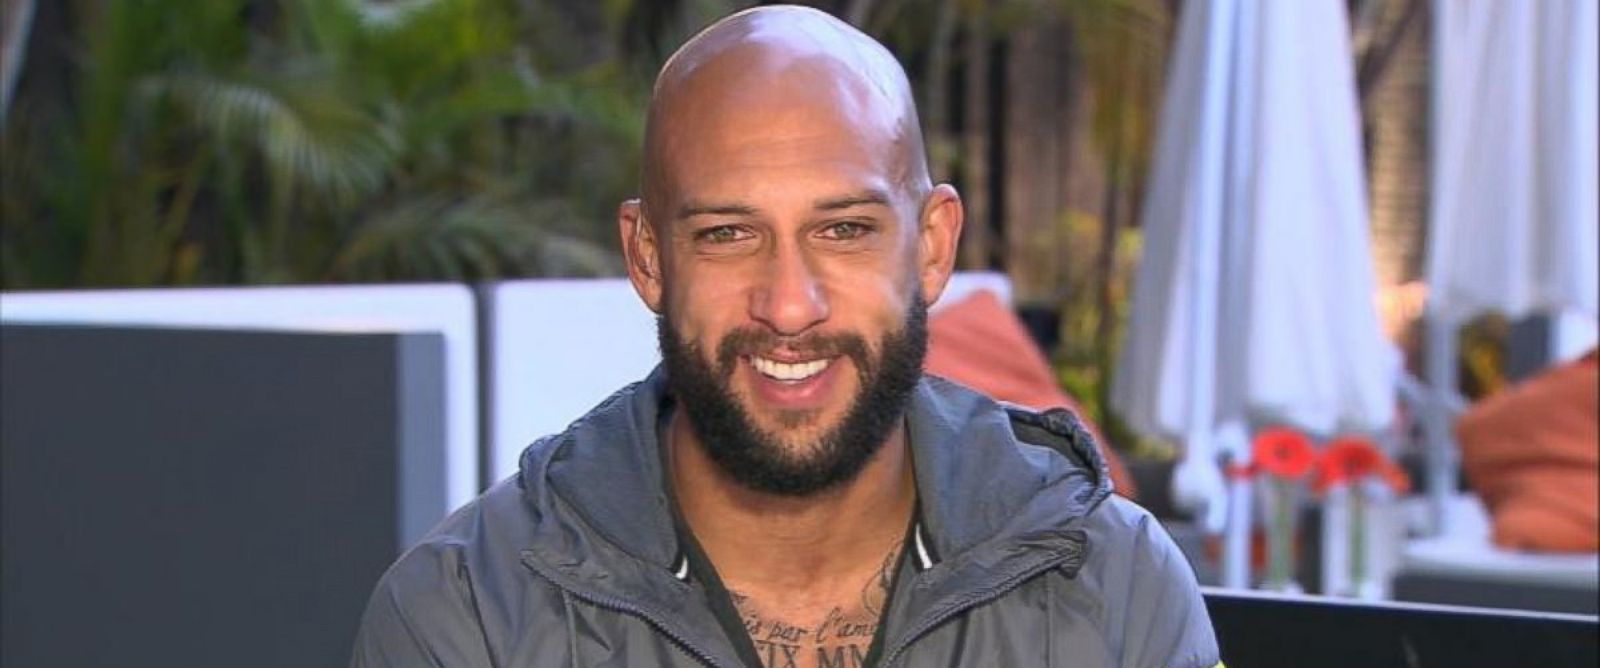 PHOTO: Tim Howard was interviewed on GMA, July 2, 2014.